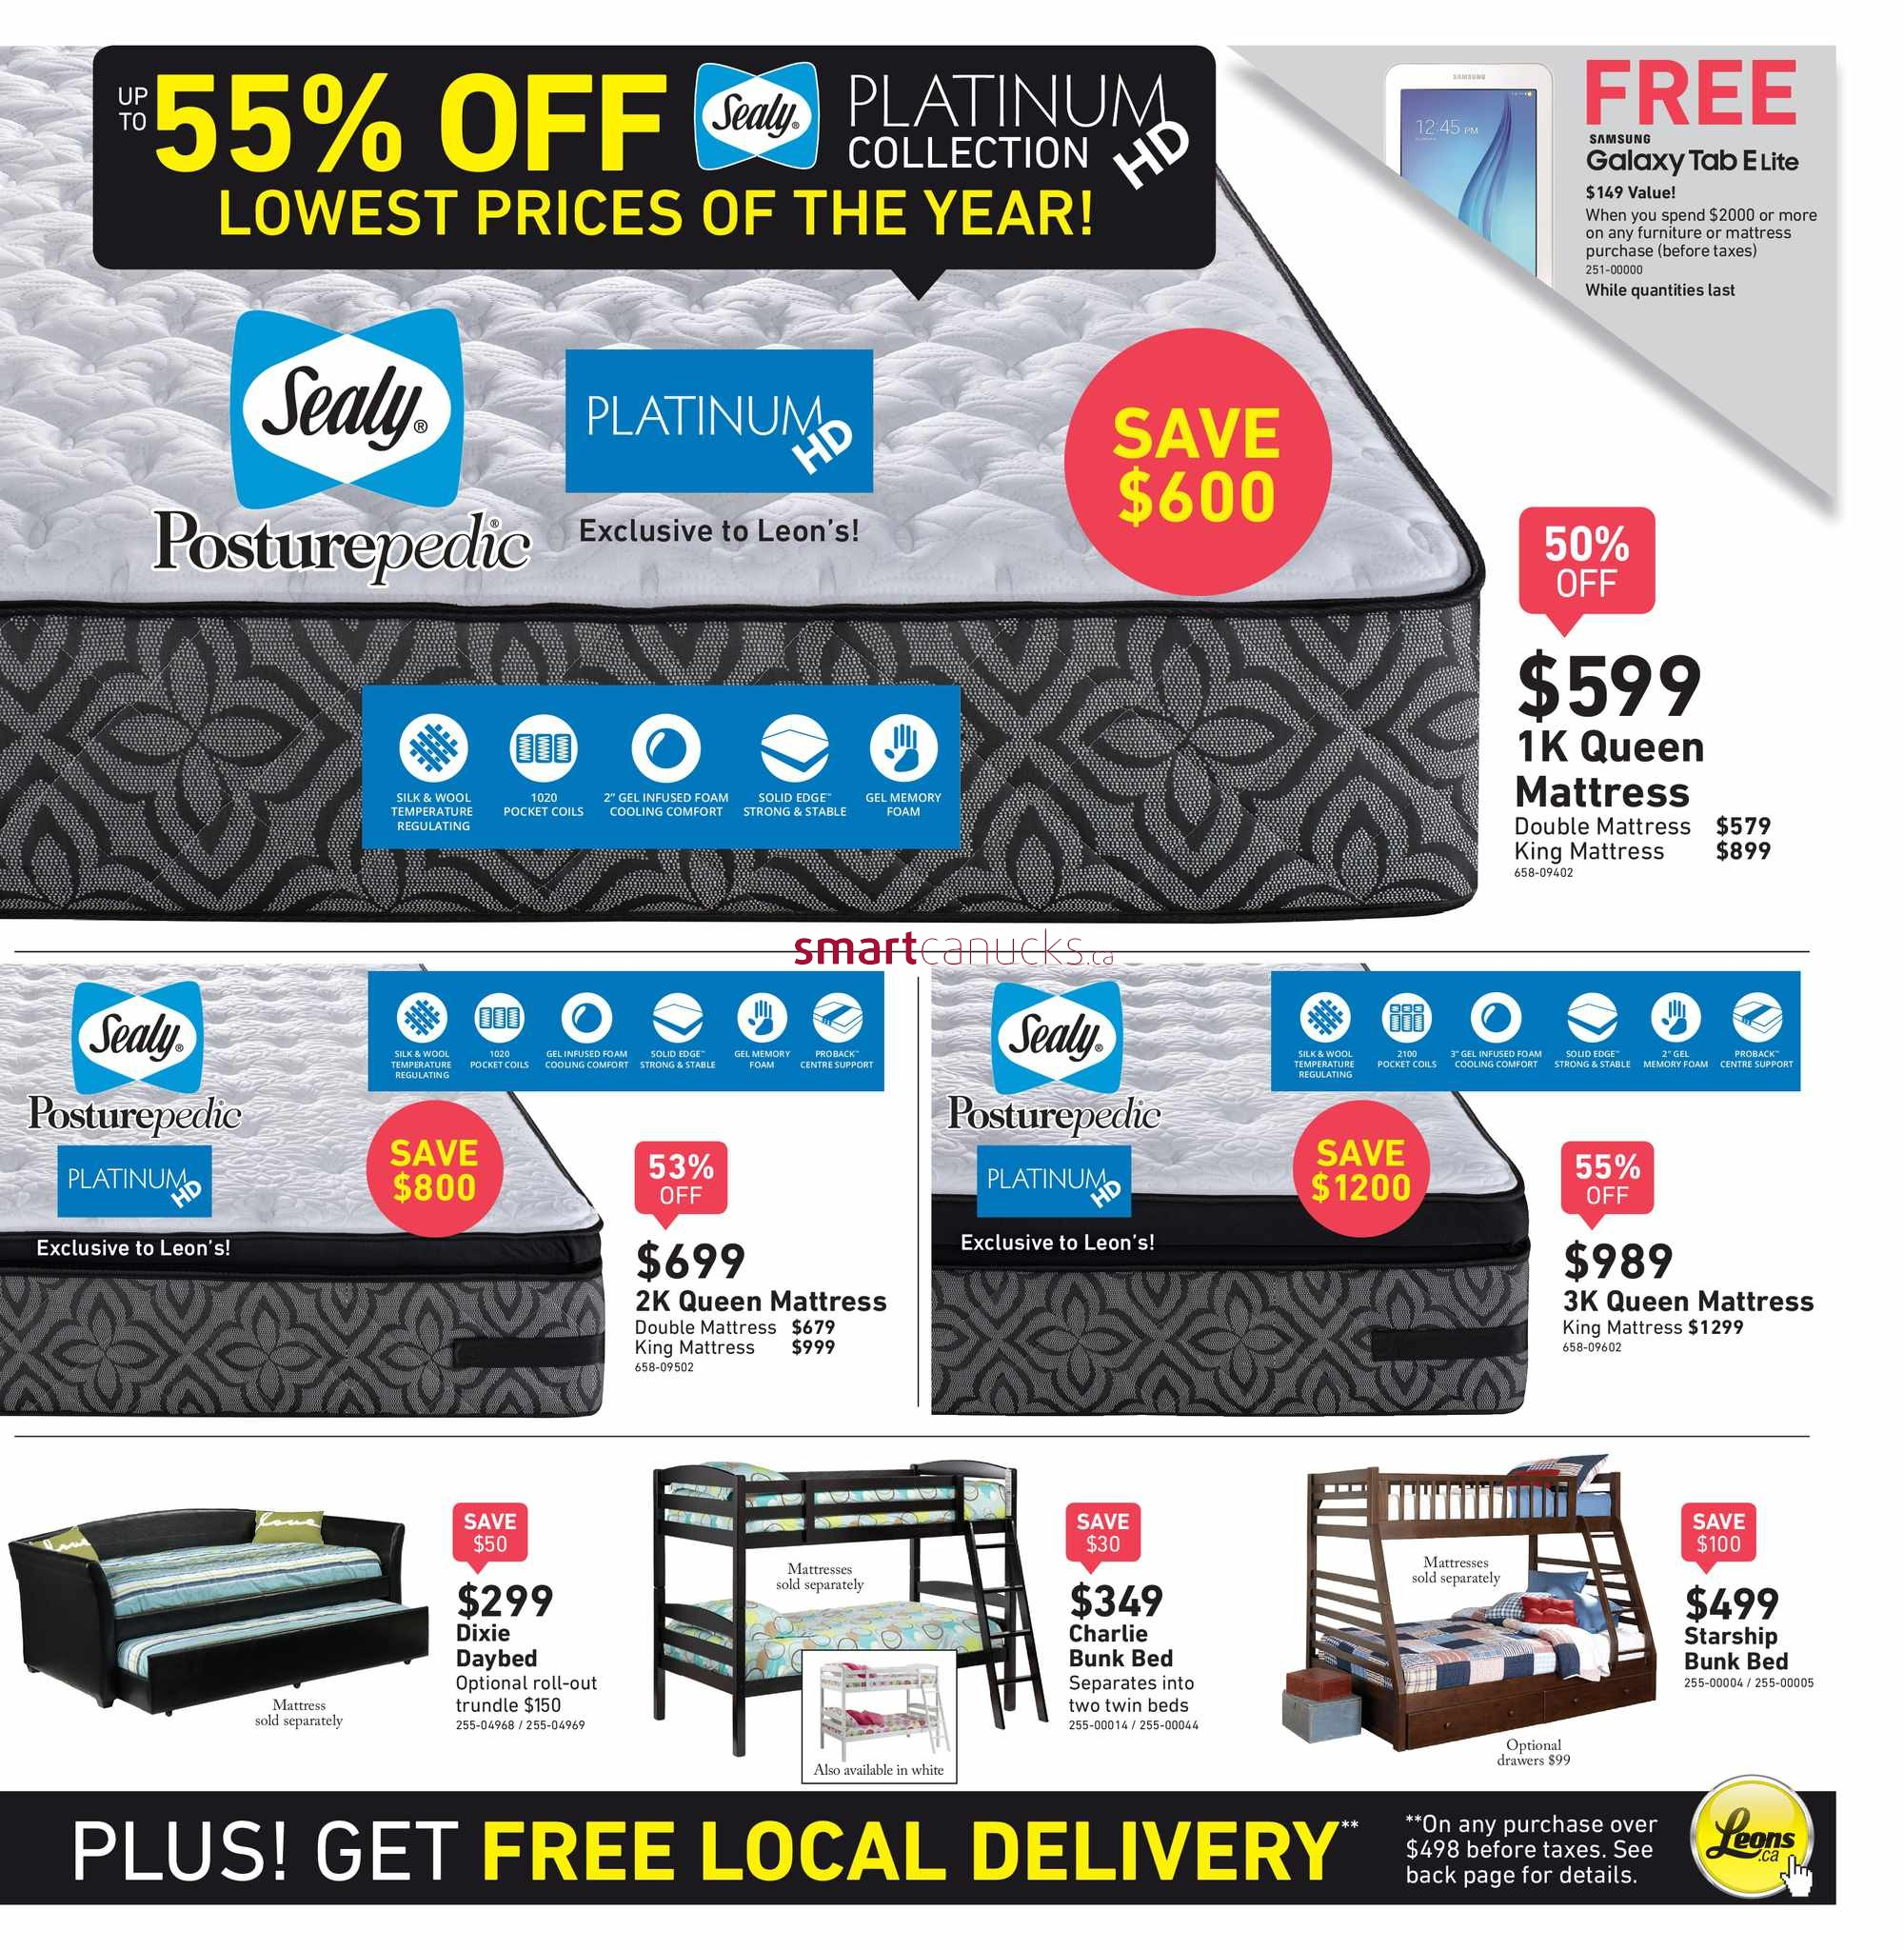 out toysrus part finder keep stuff friday shopping start sale here black ups click r free toys and an on us ads deals match for now deal eye mattress ad to other